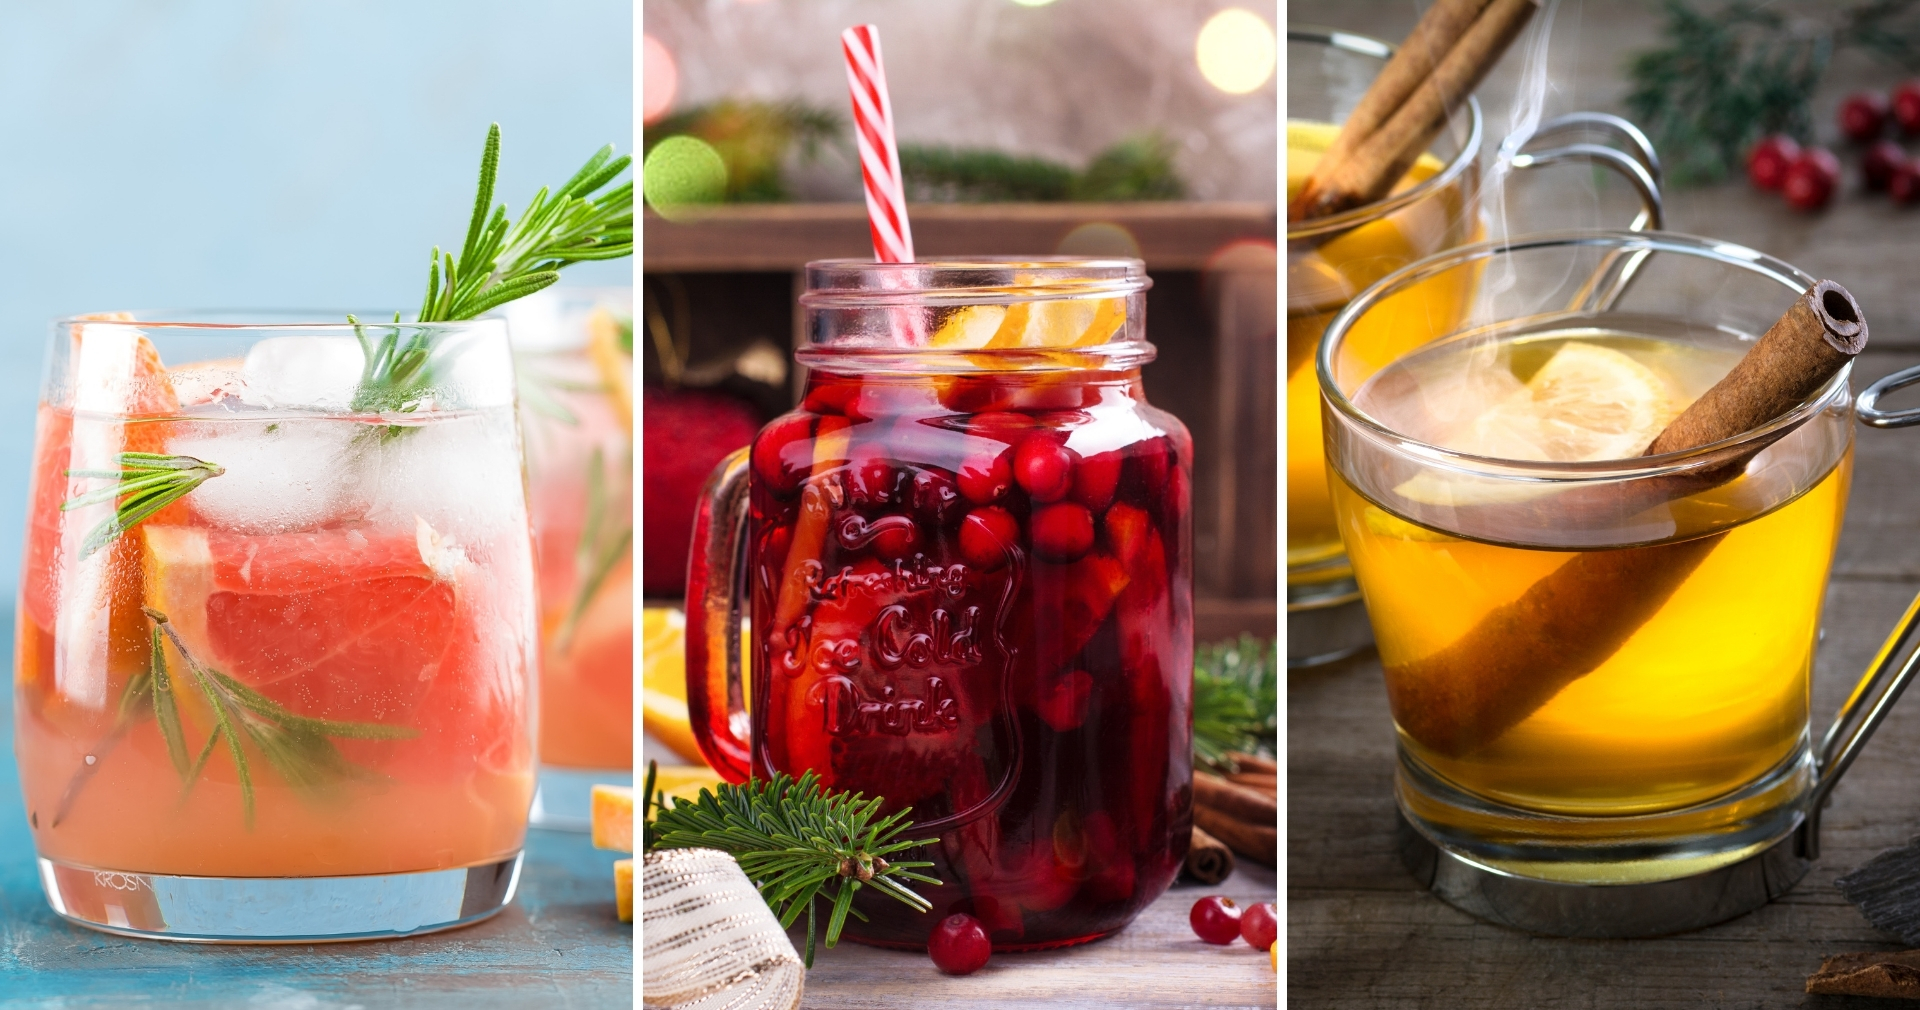 Grapefruit Cardamom Gin Fizz, Holiday Sangria, & Apple Toddy